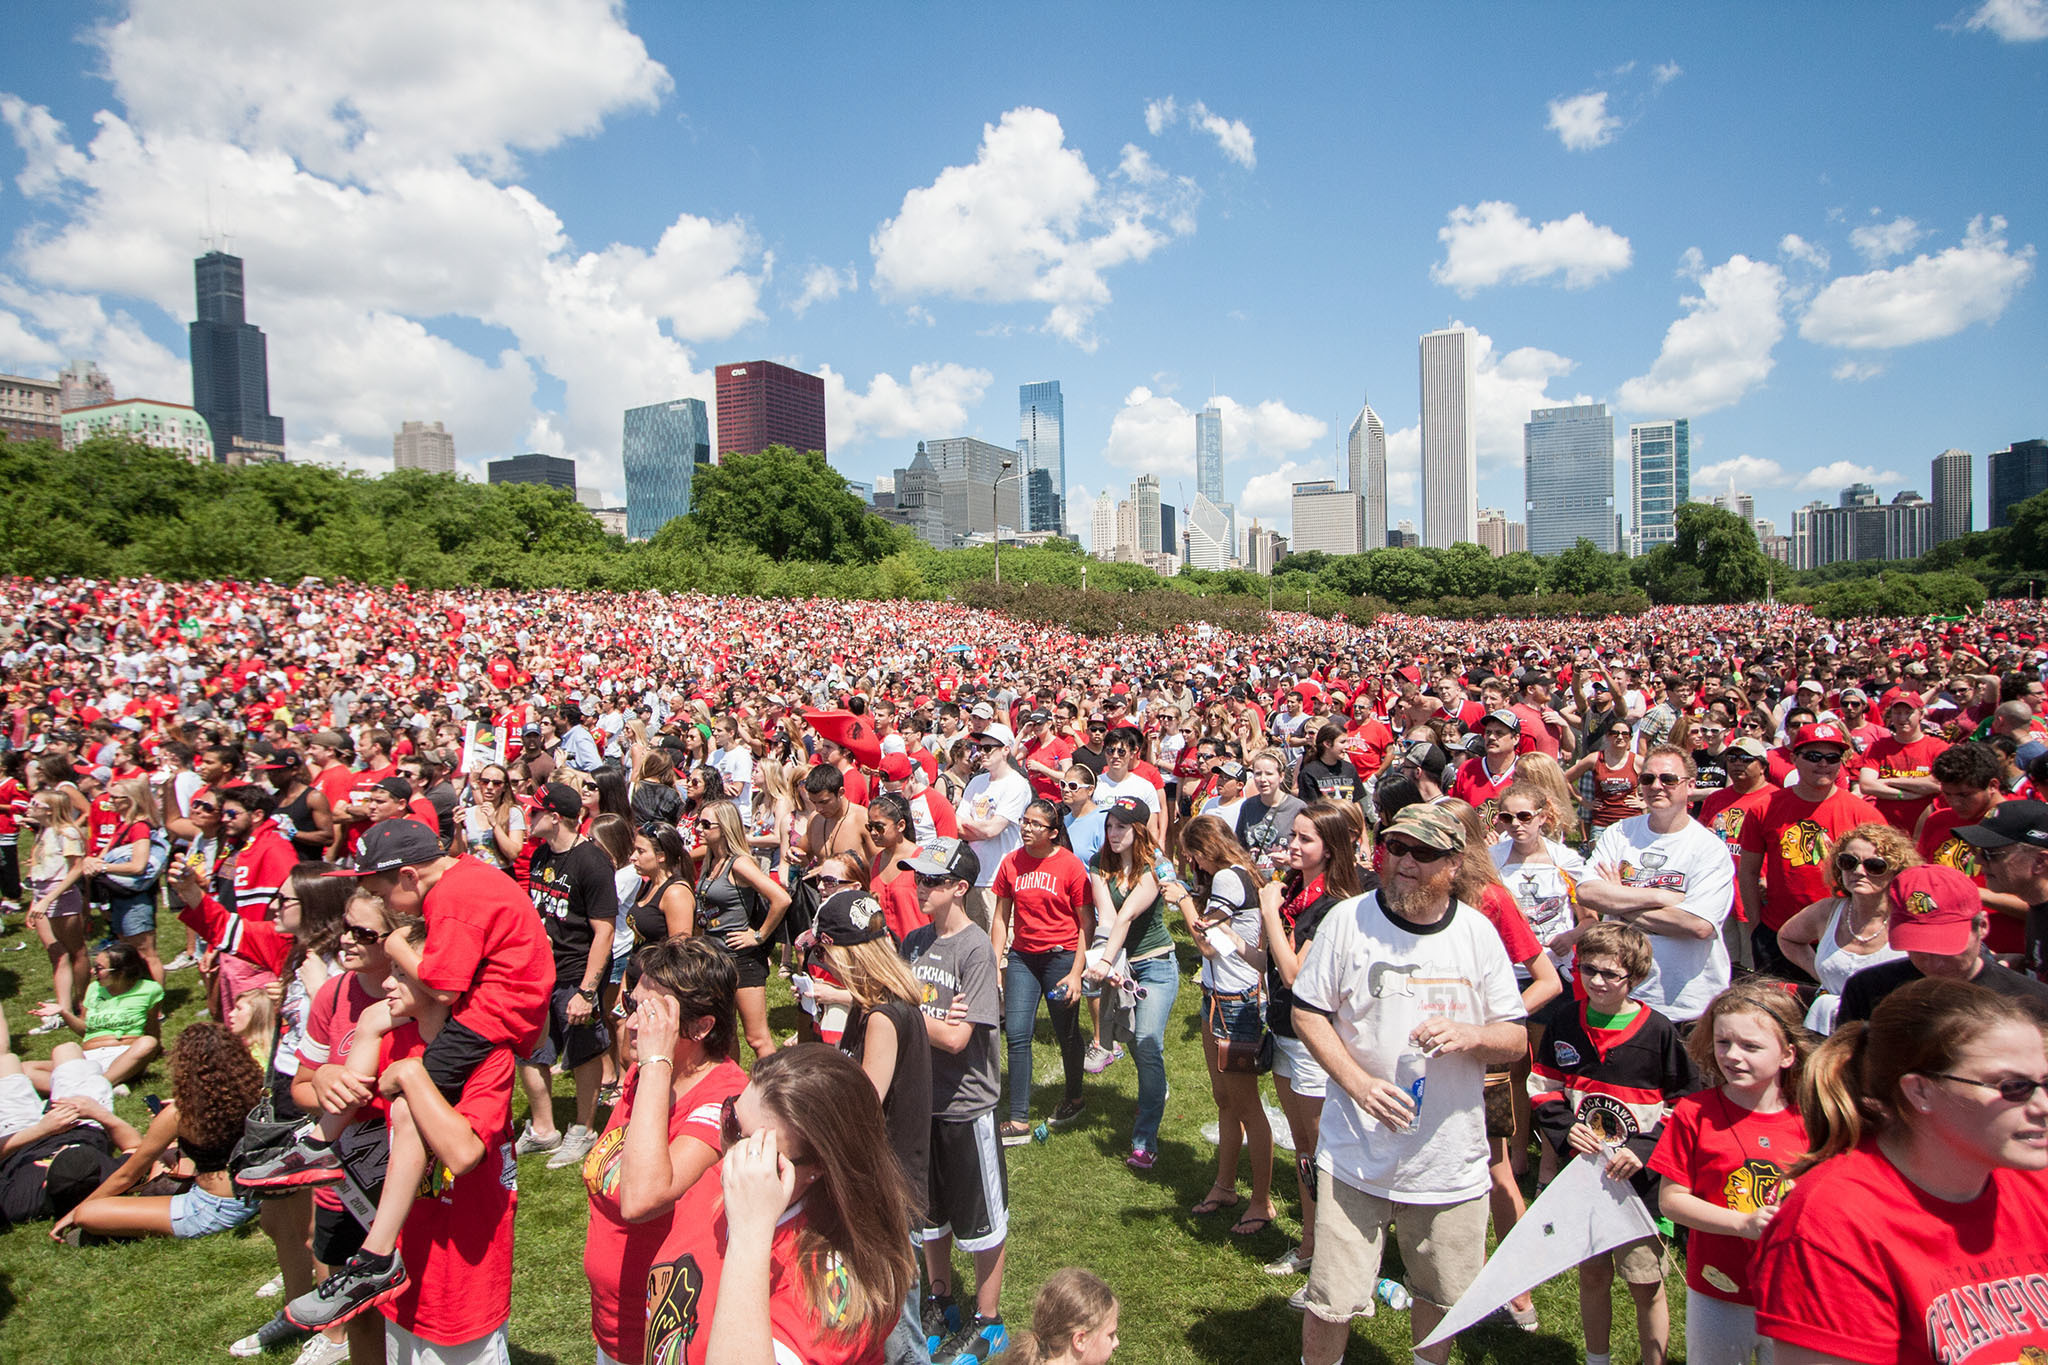 Blackhawks rally in Grant Park